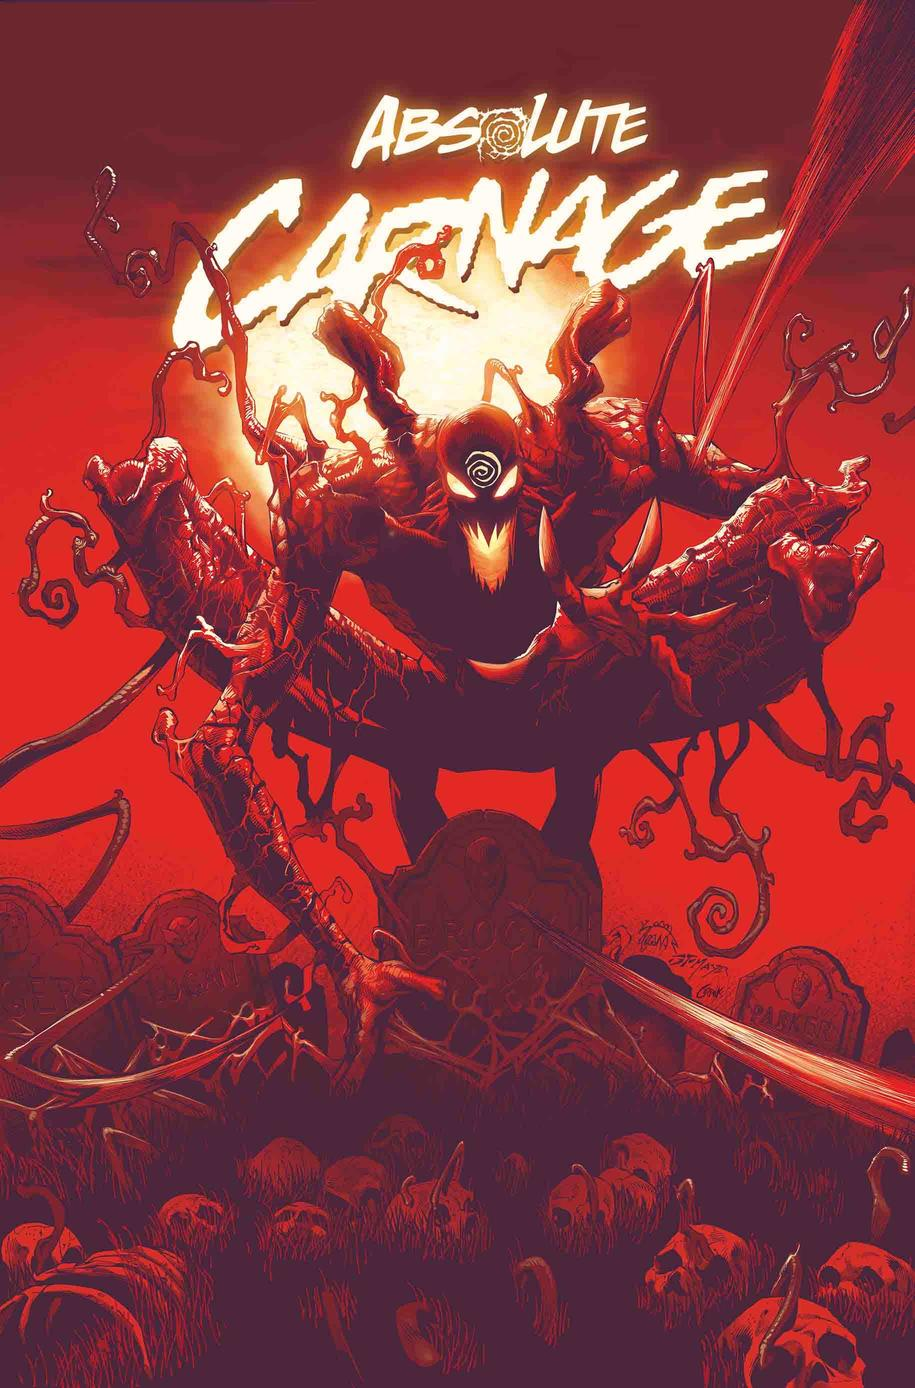 ABSOLUTE CARNAGE #1 cover pencils by Ryan Stegman